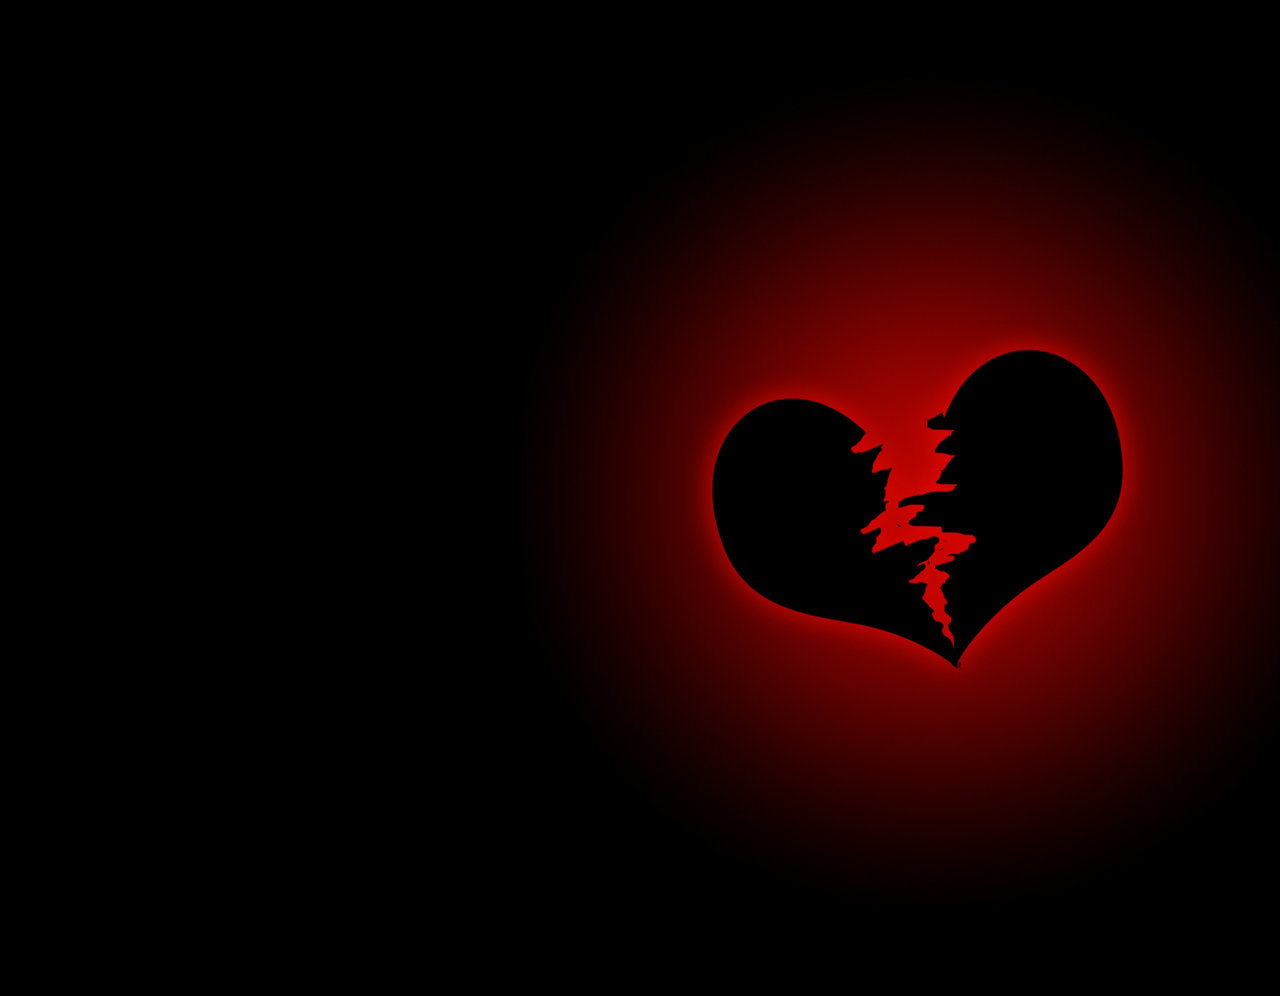 Broken Heart by admx 1280x996